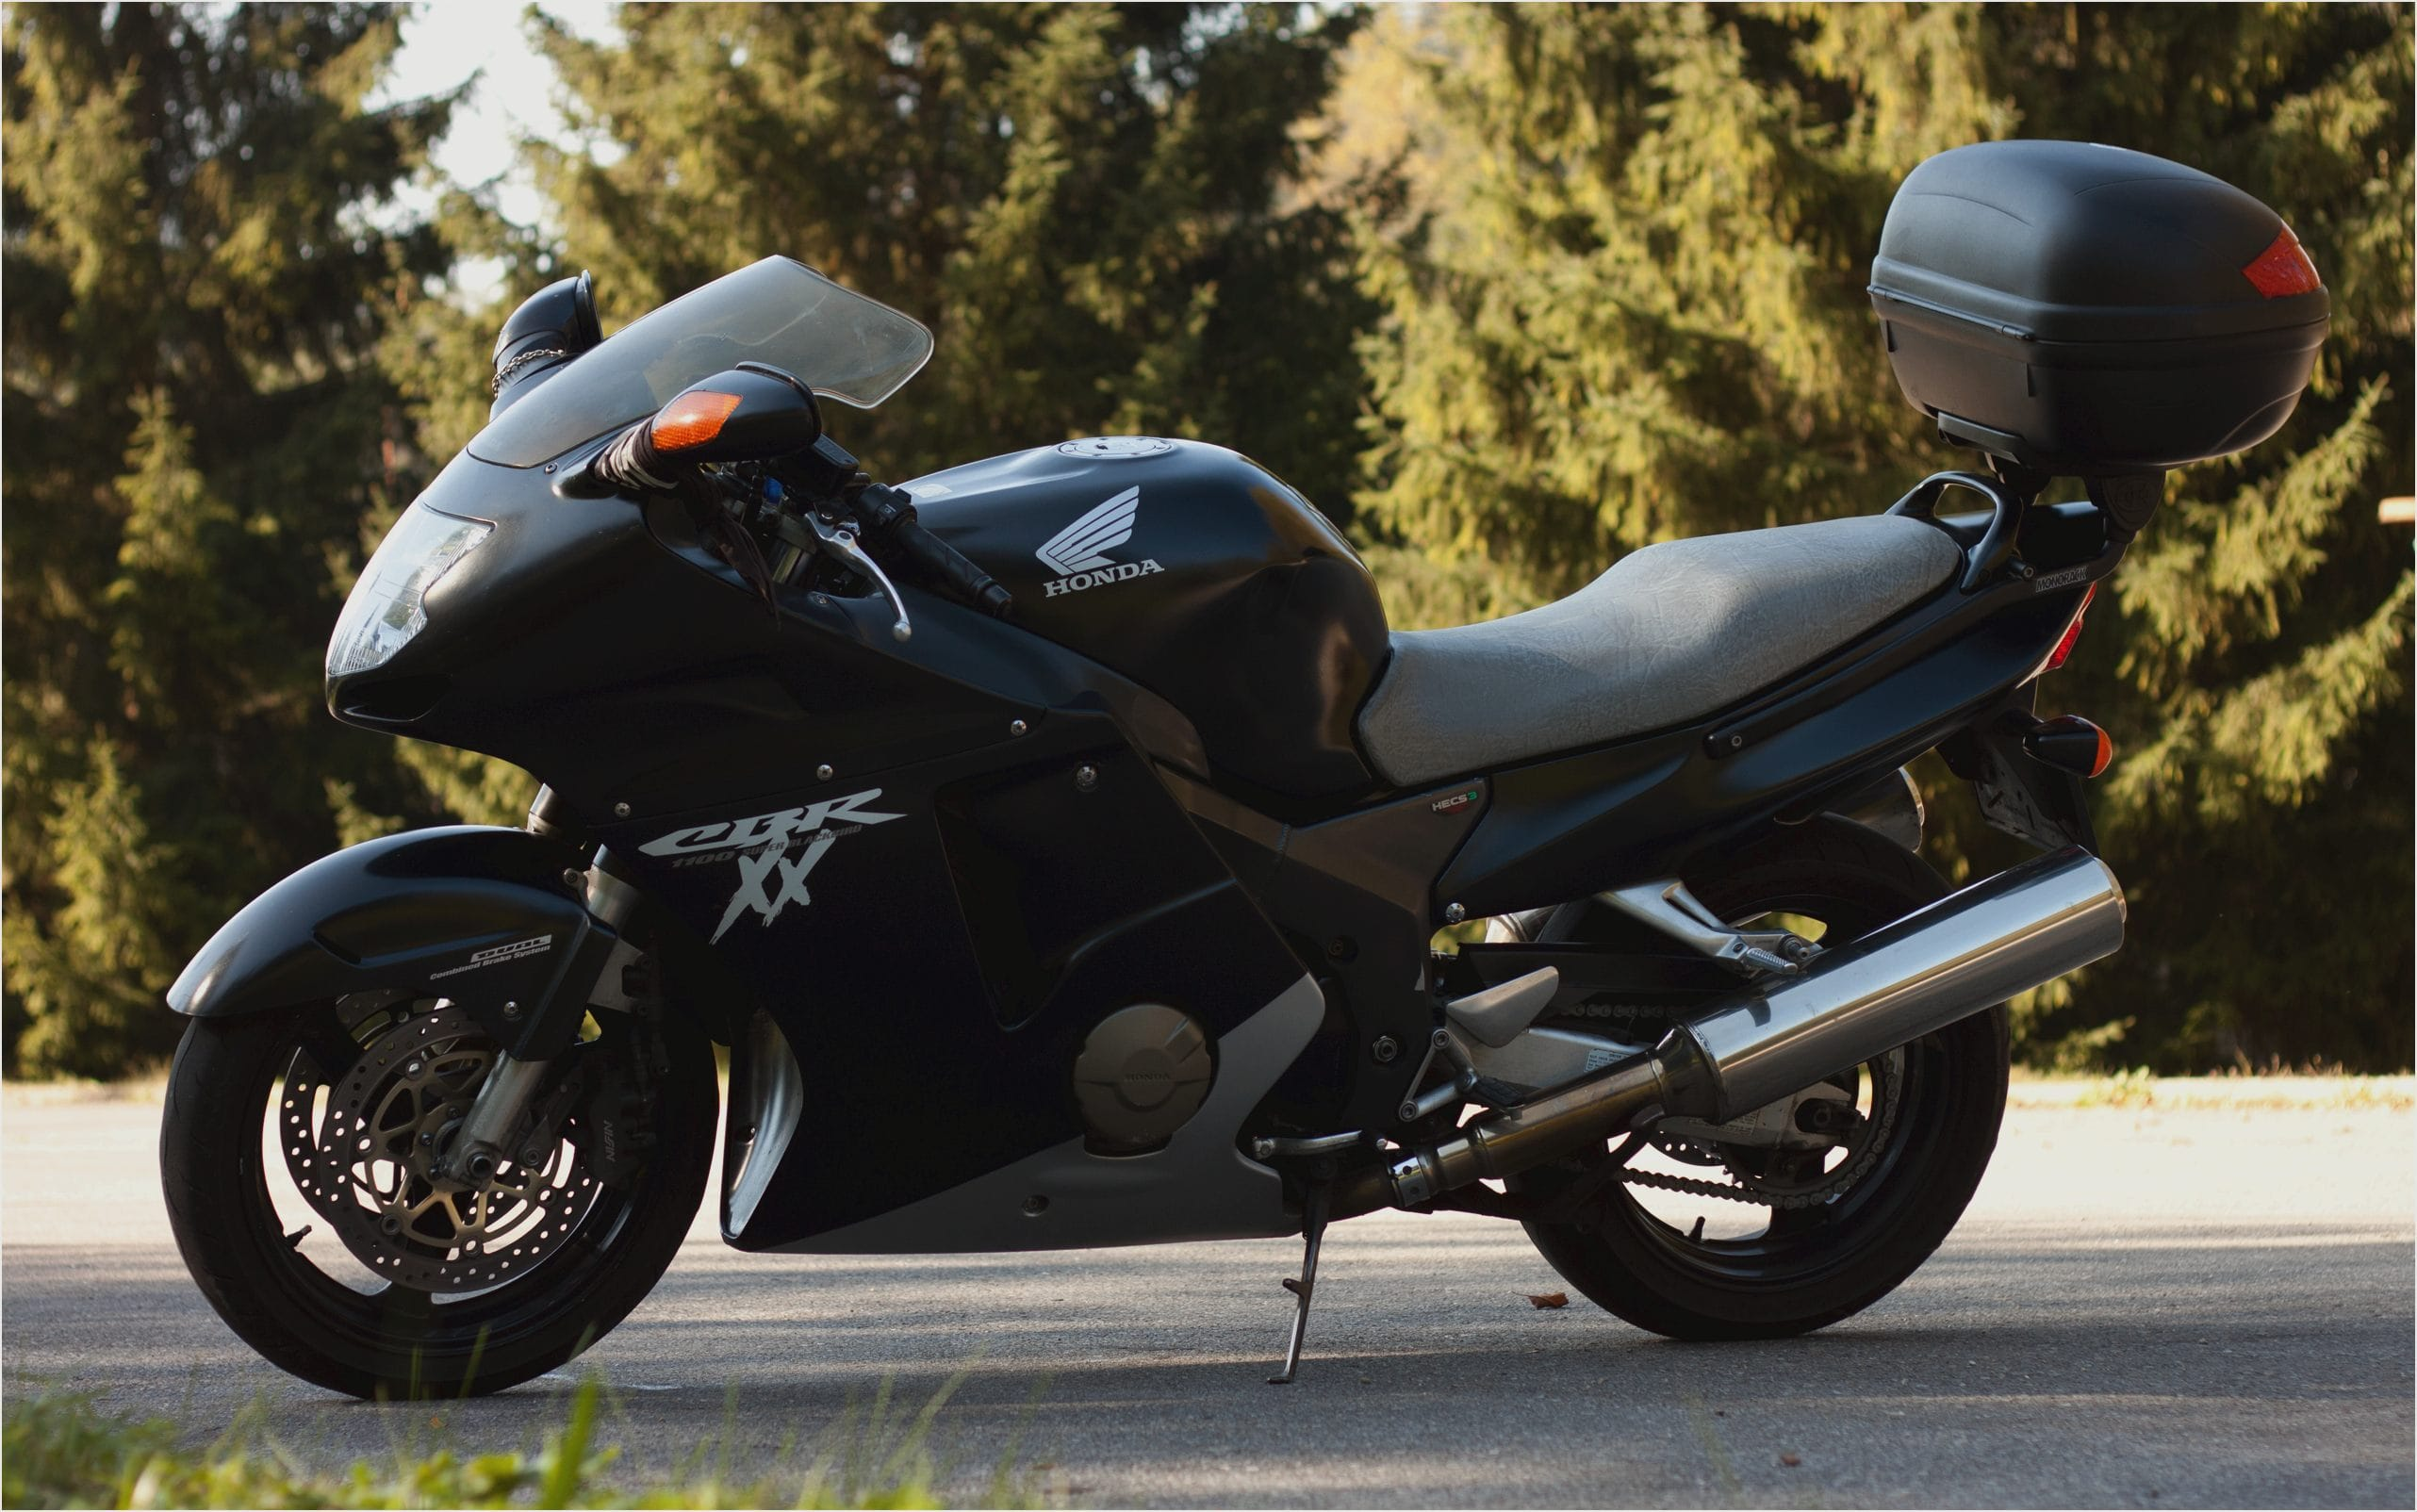 Honda Blackbird CBR1100XX Widescreen for desktop